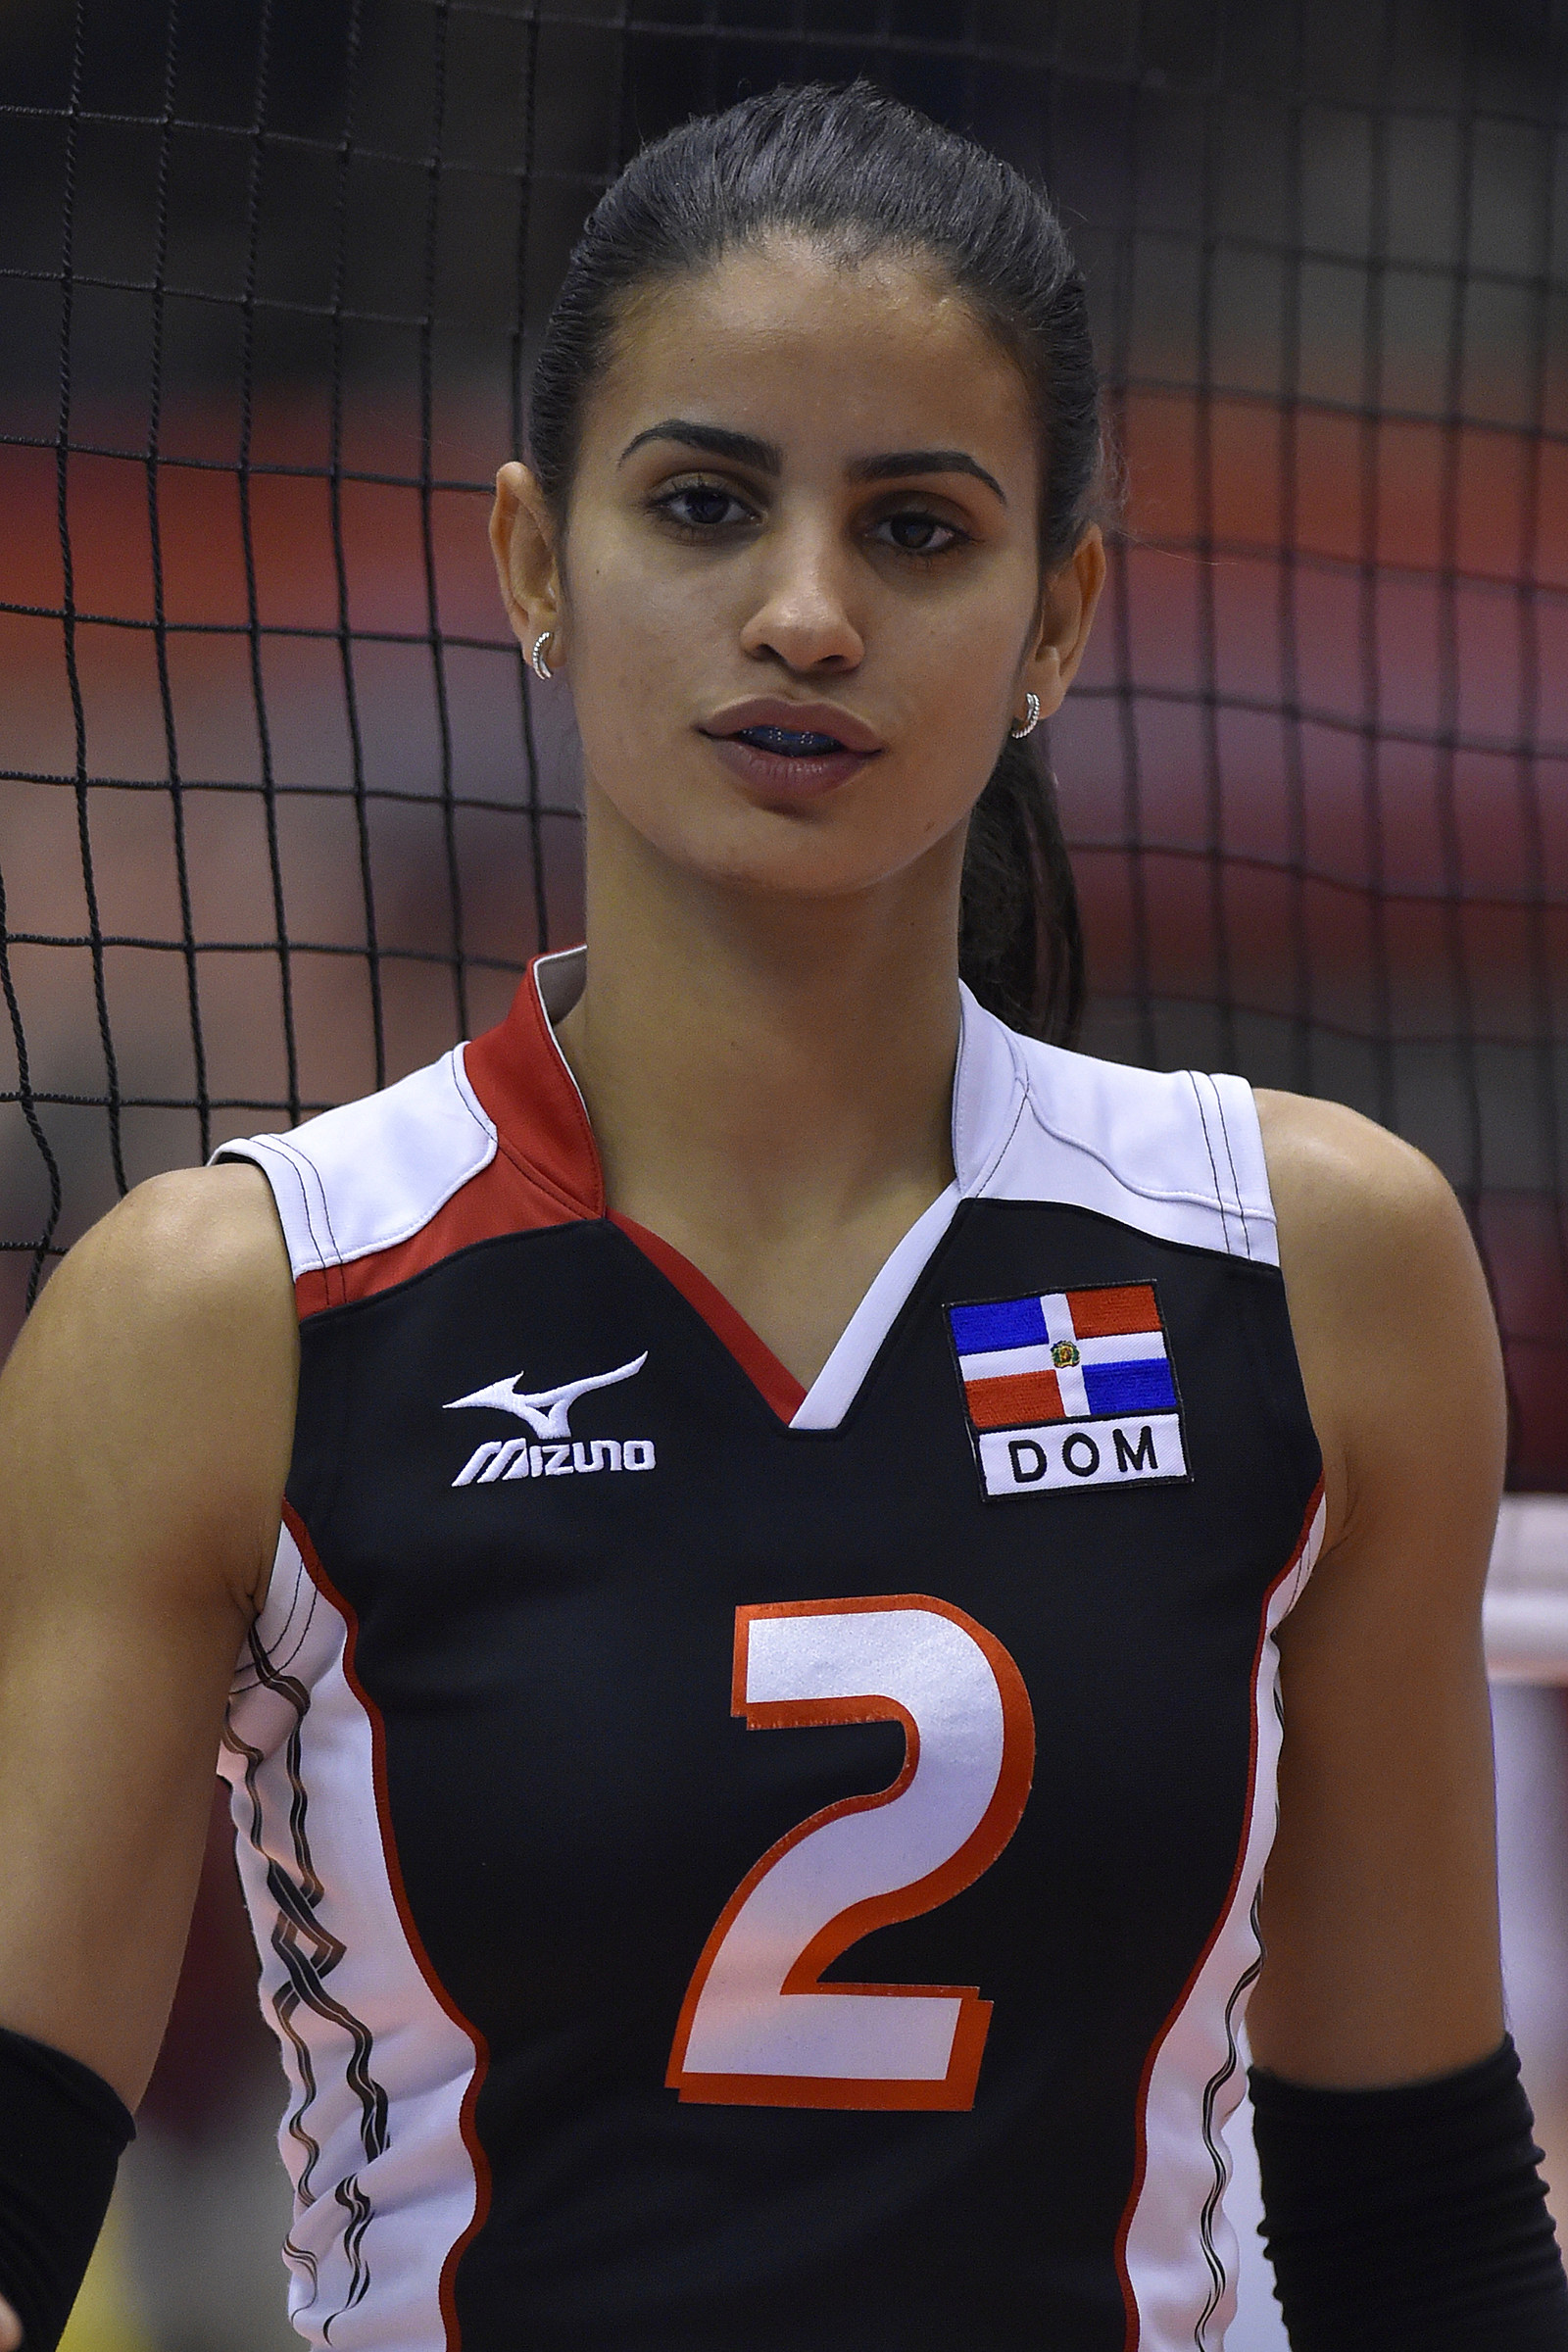 Busty volleyball player